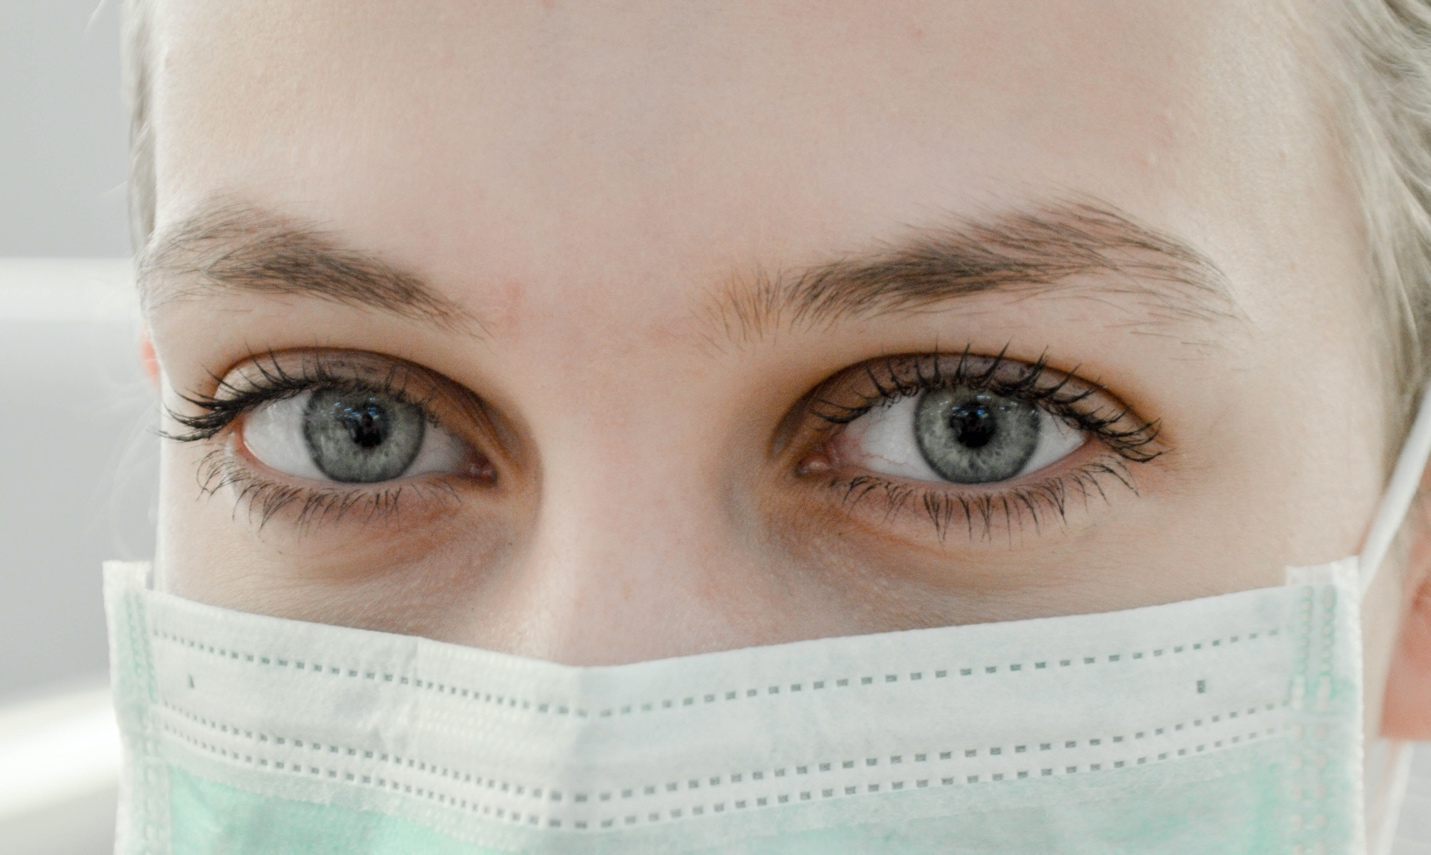 A health care worker wears a mask.